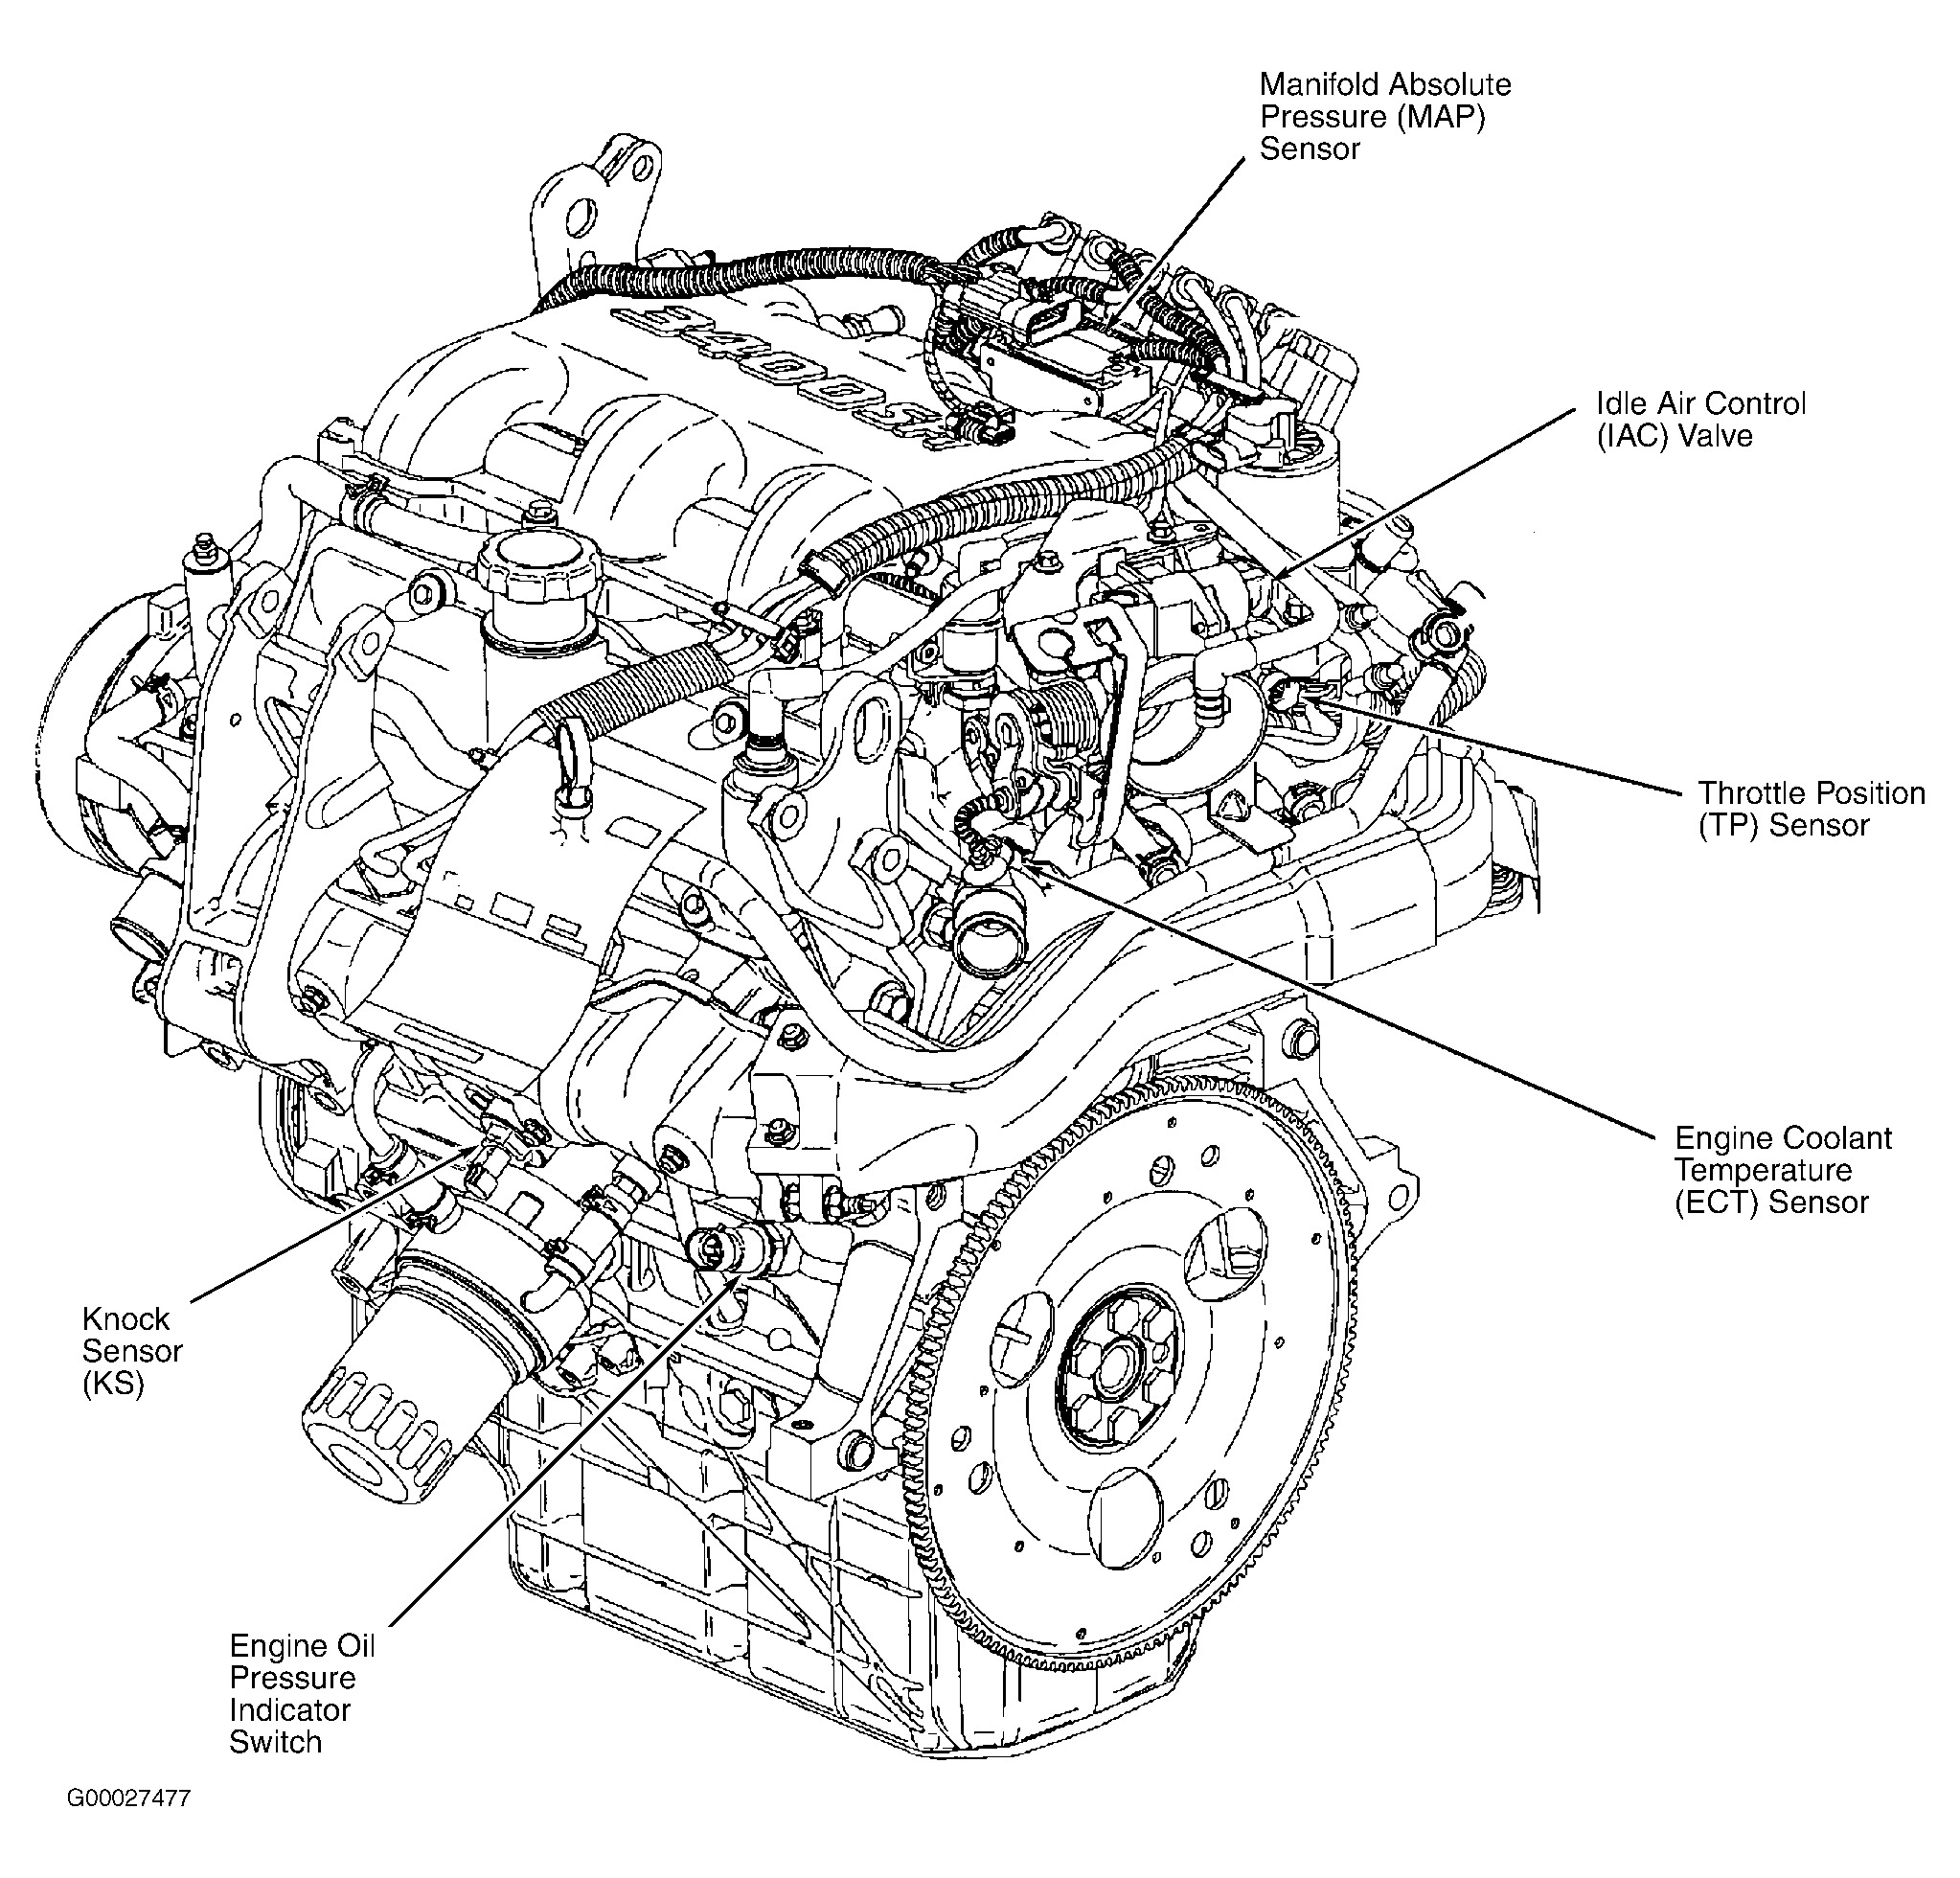 2001 Chevy Cavalier Engine Coolant Diagram